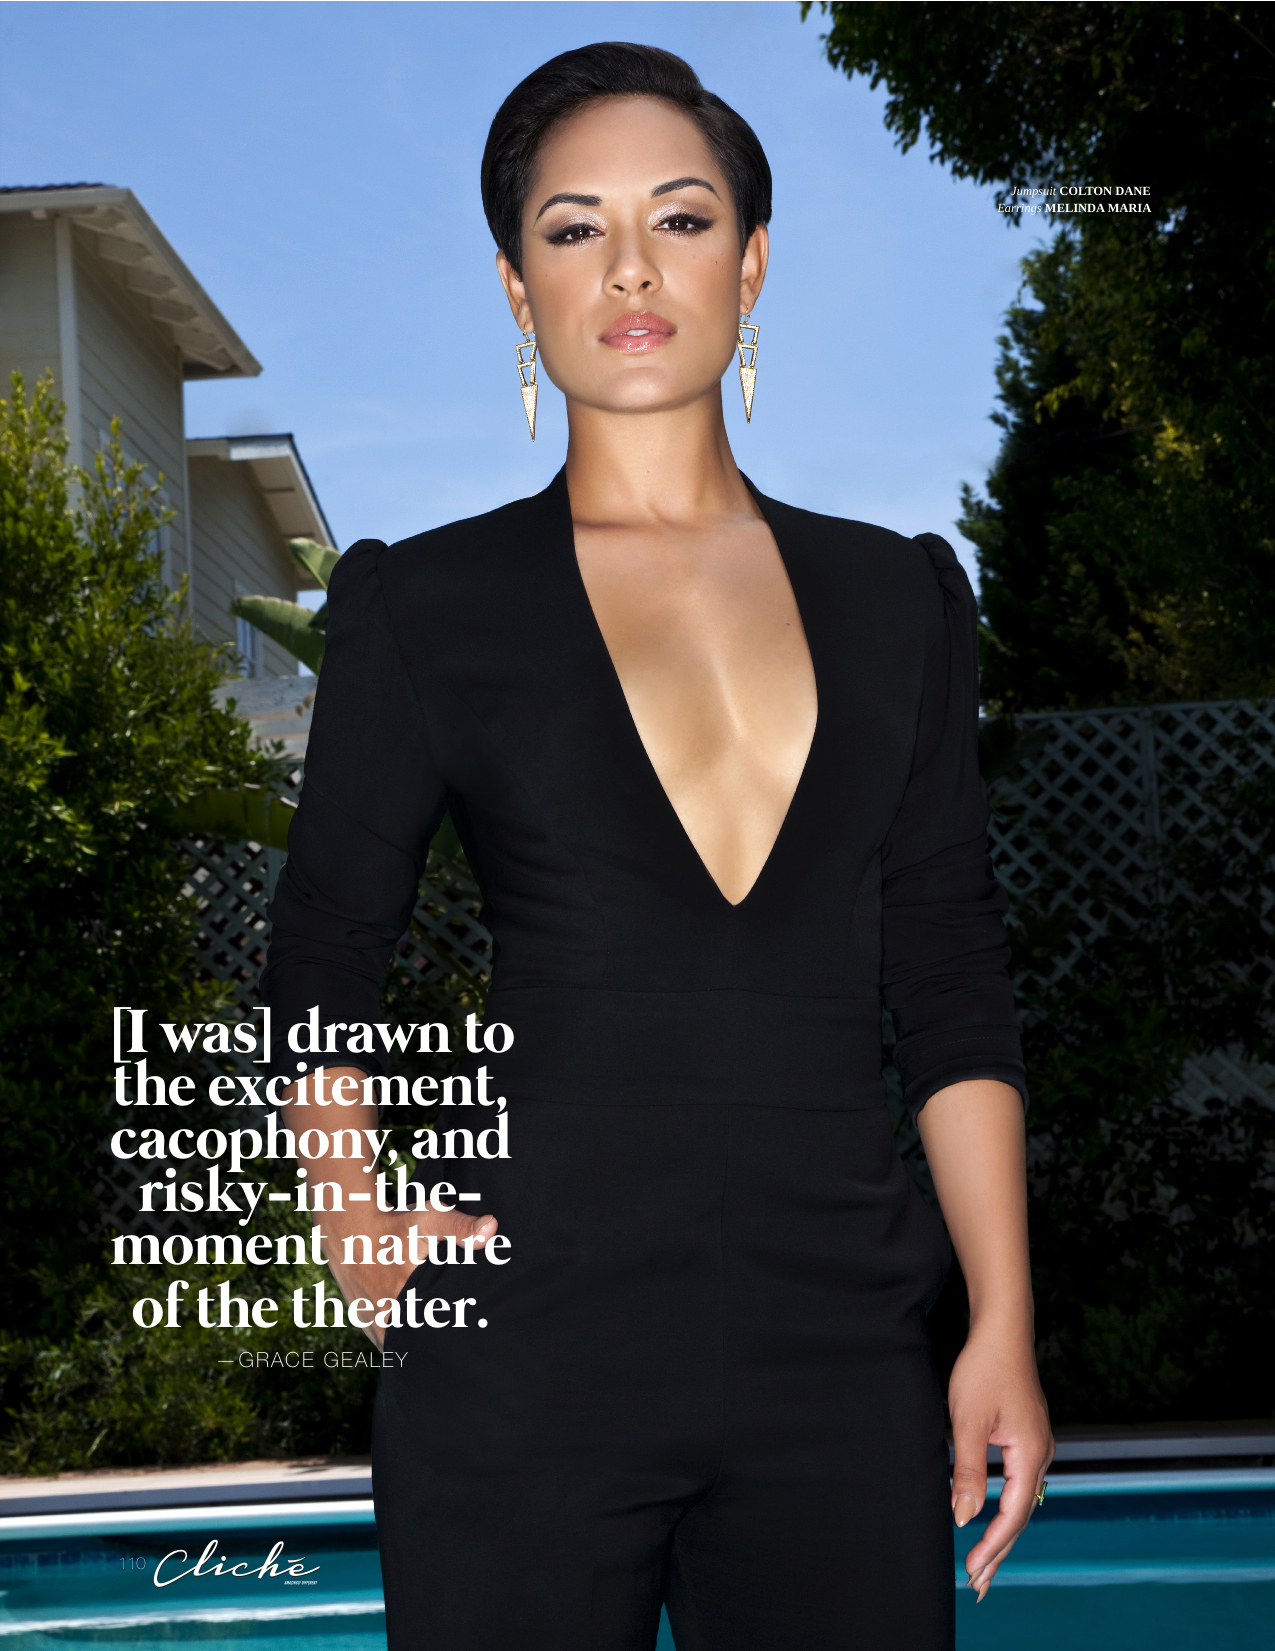 Cliche Magazine - Grace Gealey